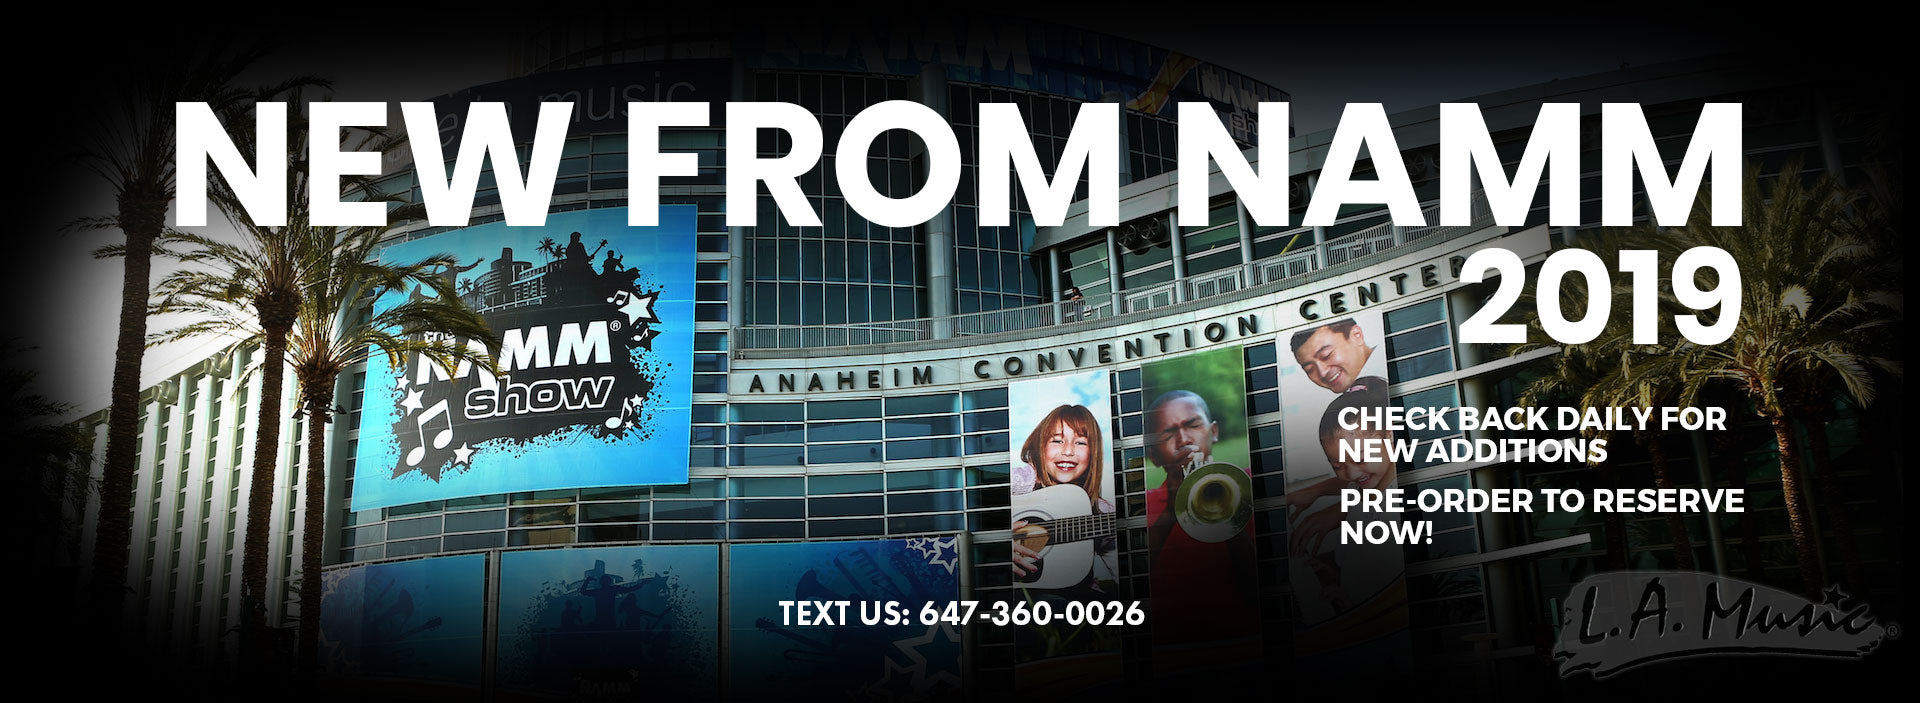 New from NAMM 2019